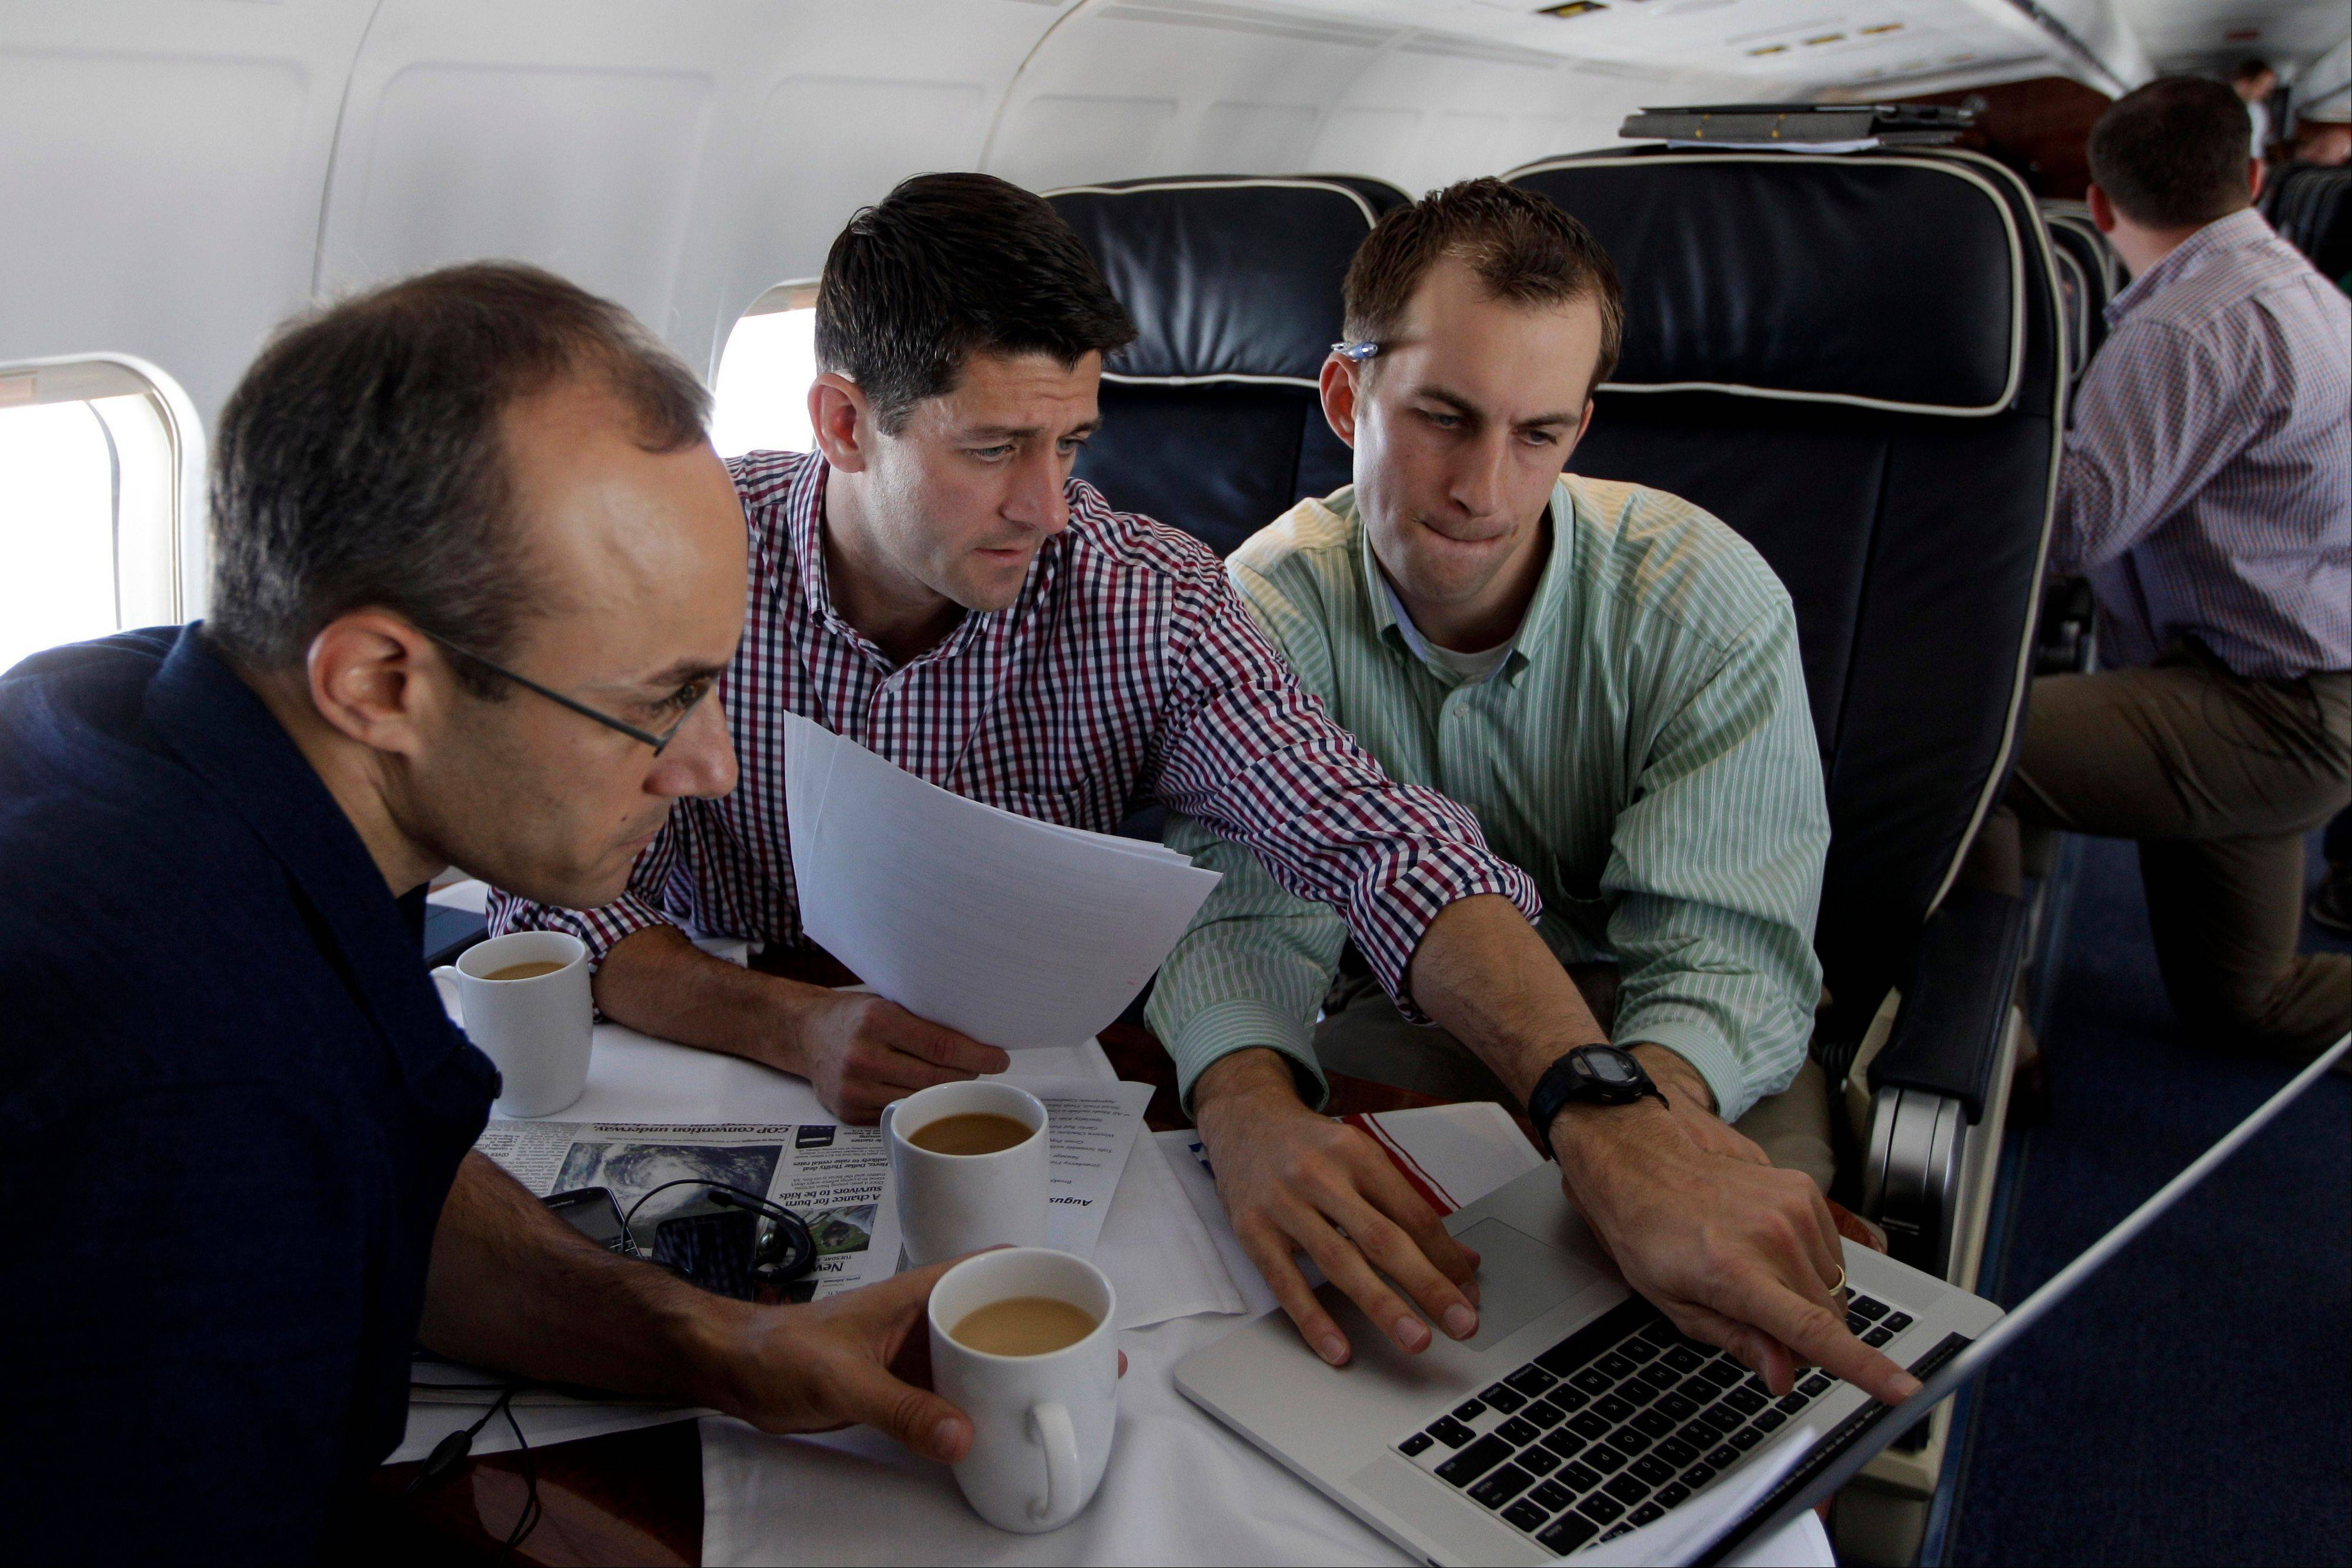 Republican vice presidential candidate Paul Ryan, center, of Wisconsin, works on the speech he will deliver at the Republican National Convention with senior adviser Dan Senor, left, and senior aide Conor Sweeney. during the campaign charter flight from Wisconsin to Tampa on Tuesday.